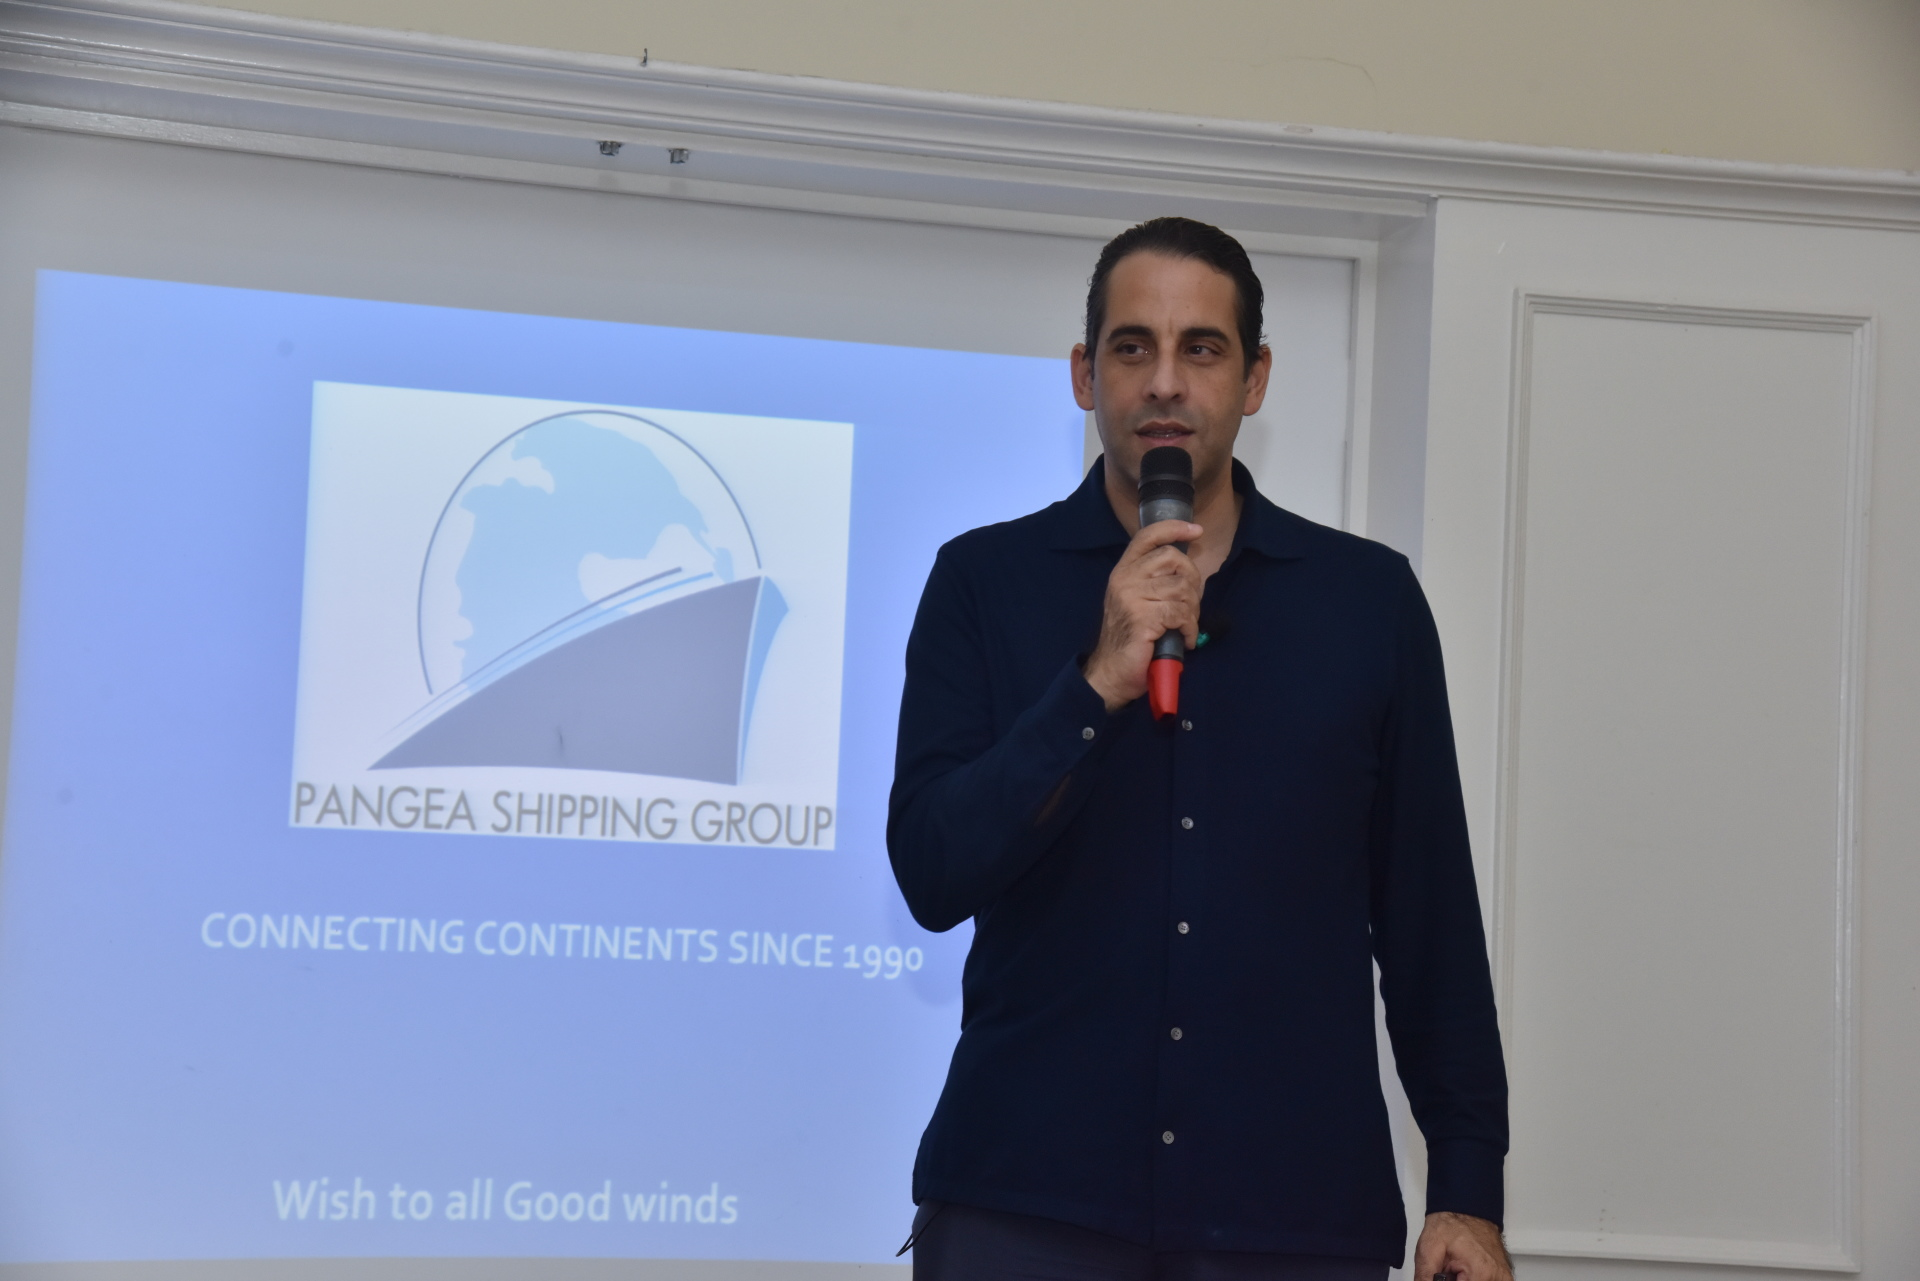 Official launch of the holding PANGEA SHIPPING GROUP